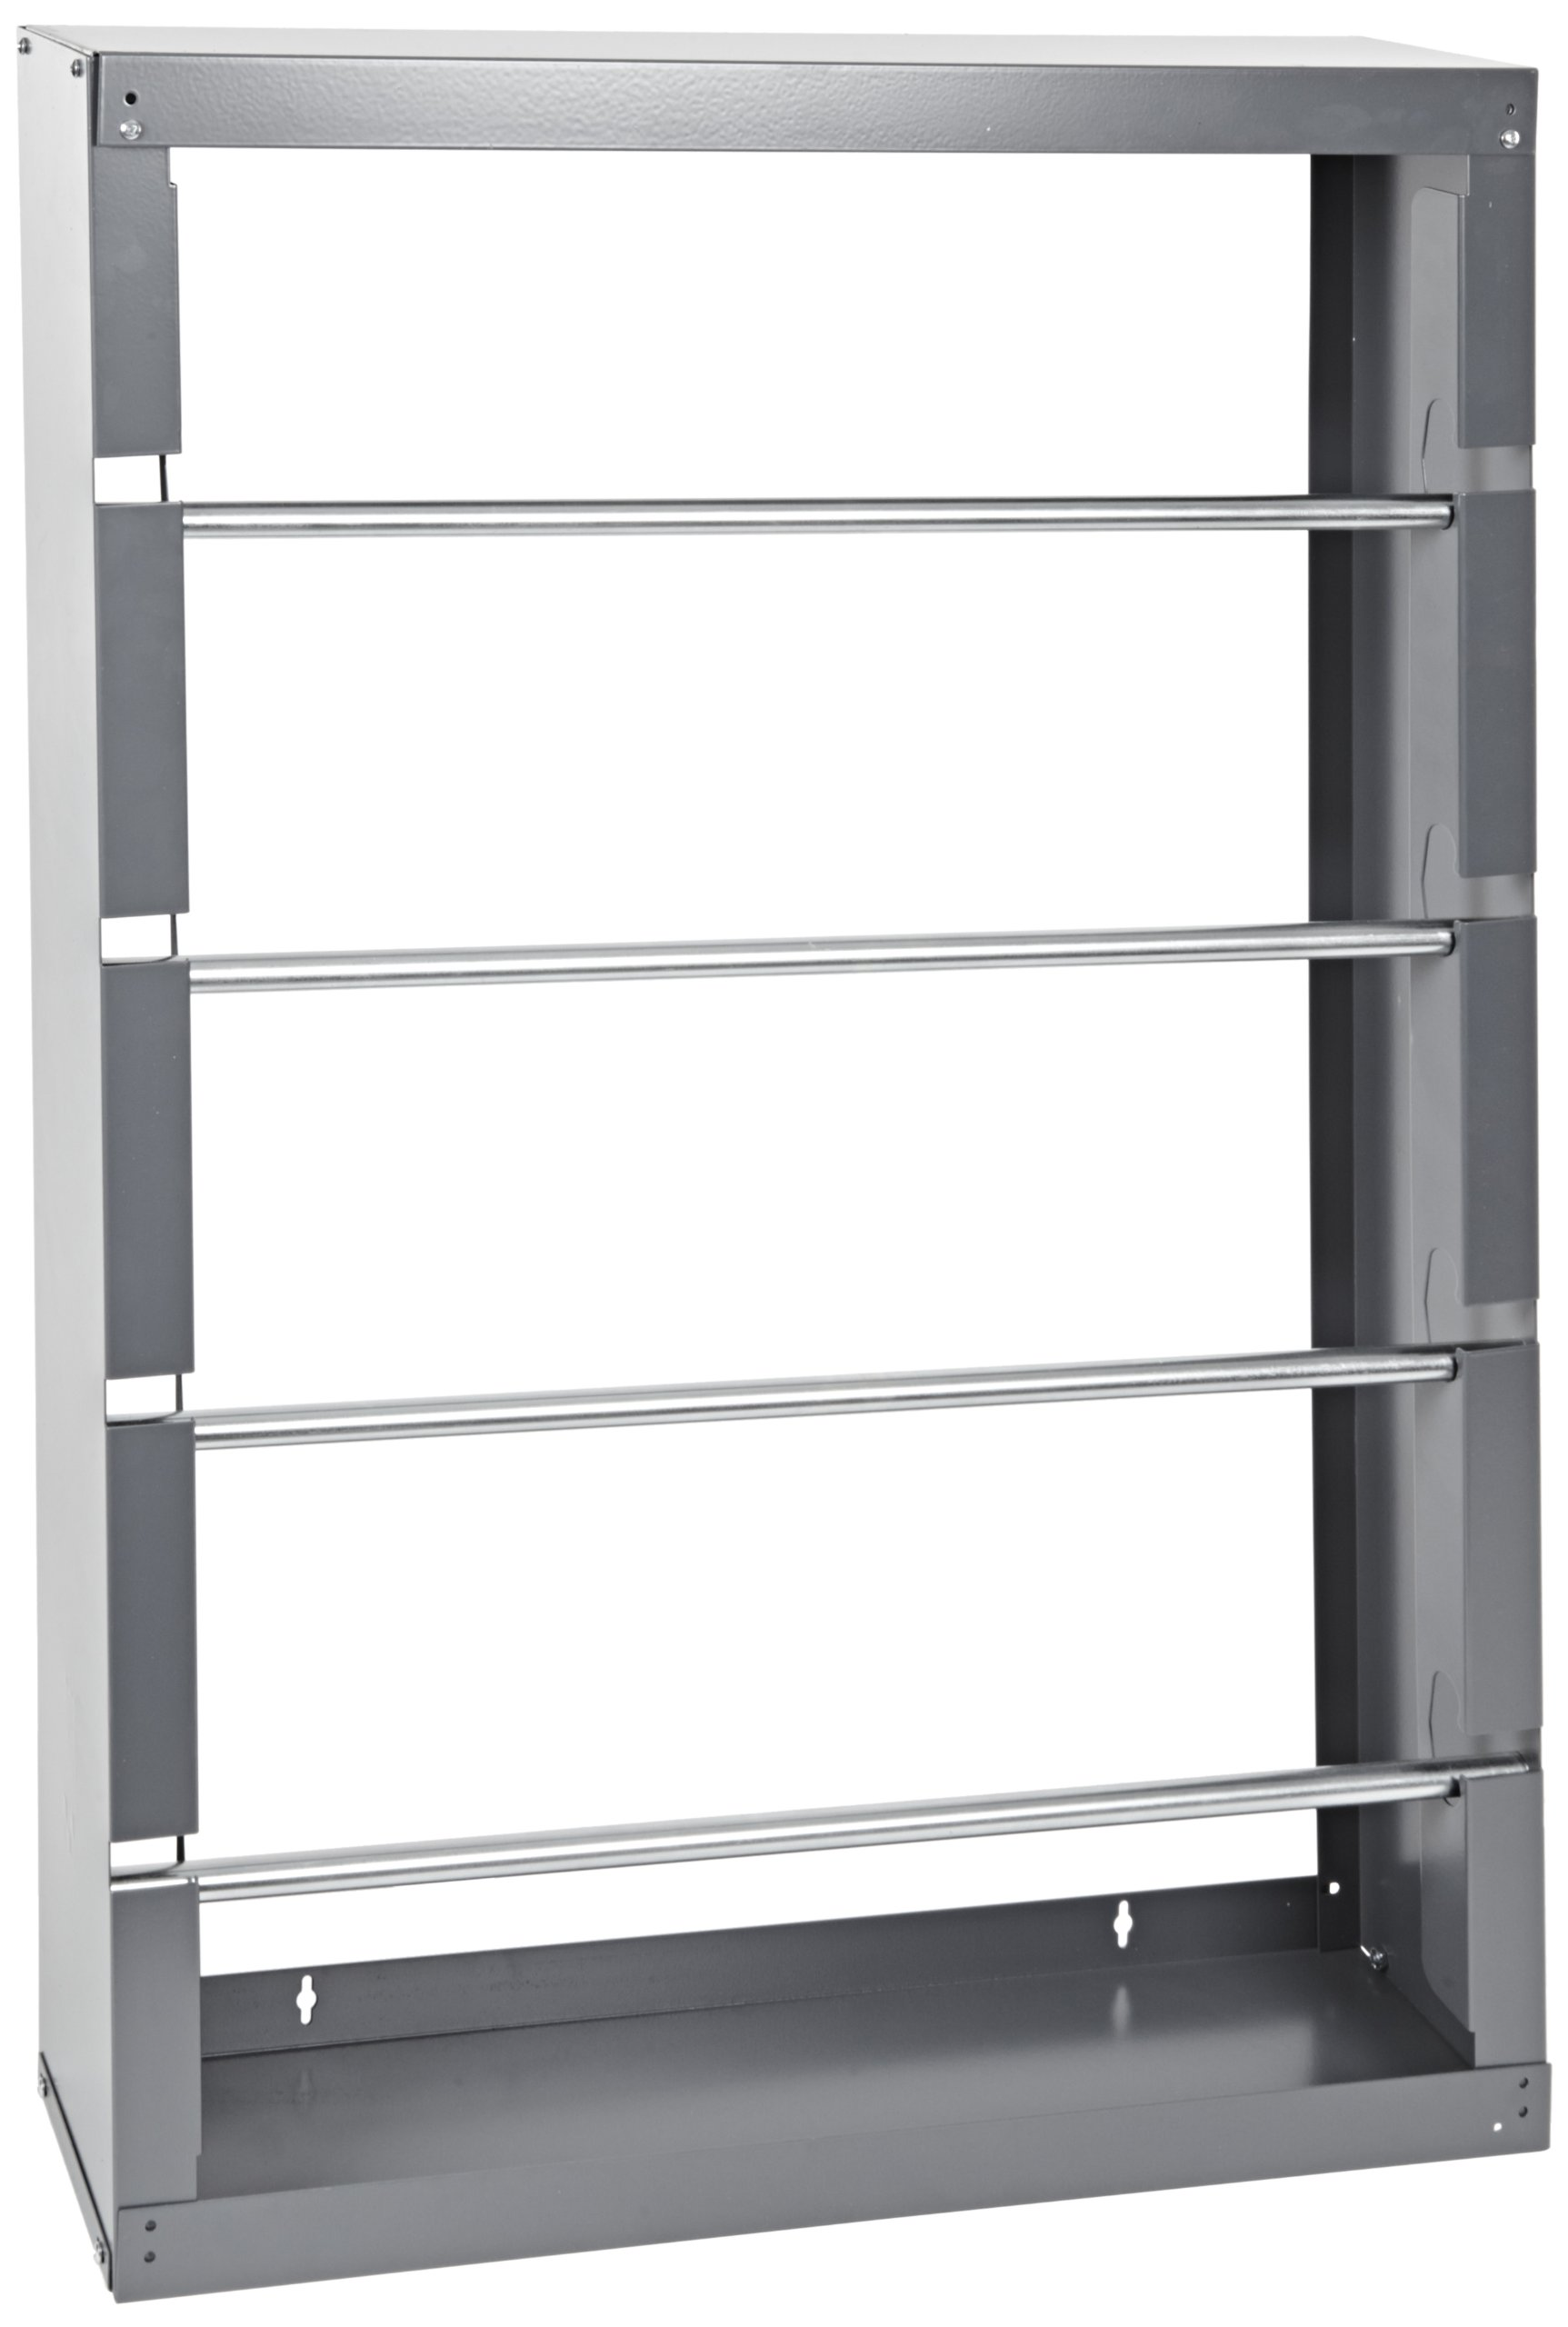 "Durham 368-95 Gray Cold-Rolled Steel Wire Spool Rack with 4 Rods, 26-1/8"" Width x 37-1/8"" Height x 6"" Depth"